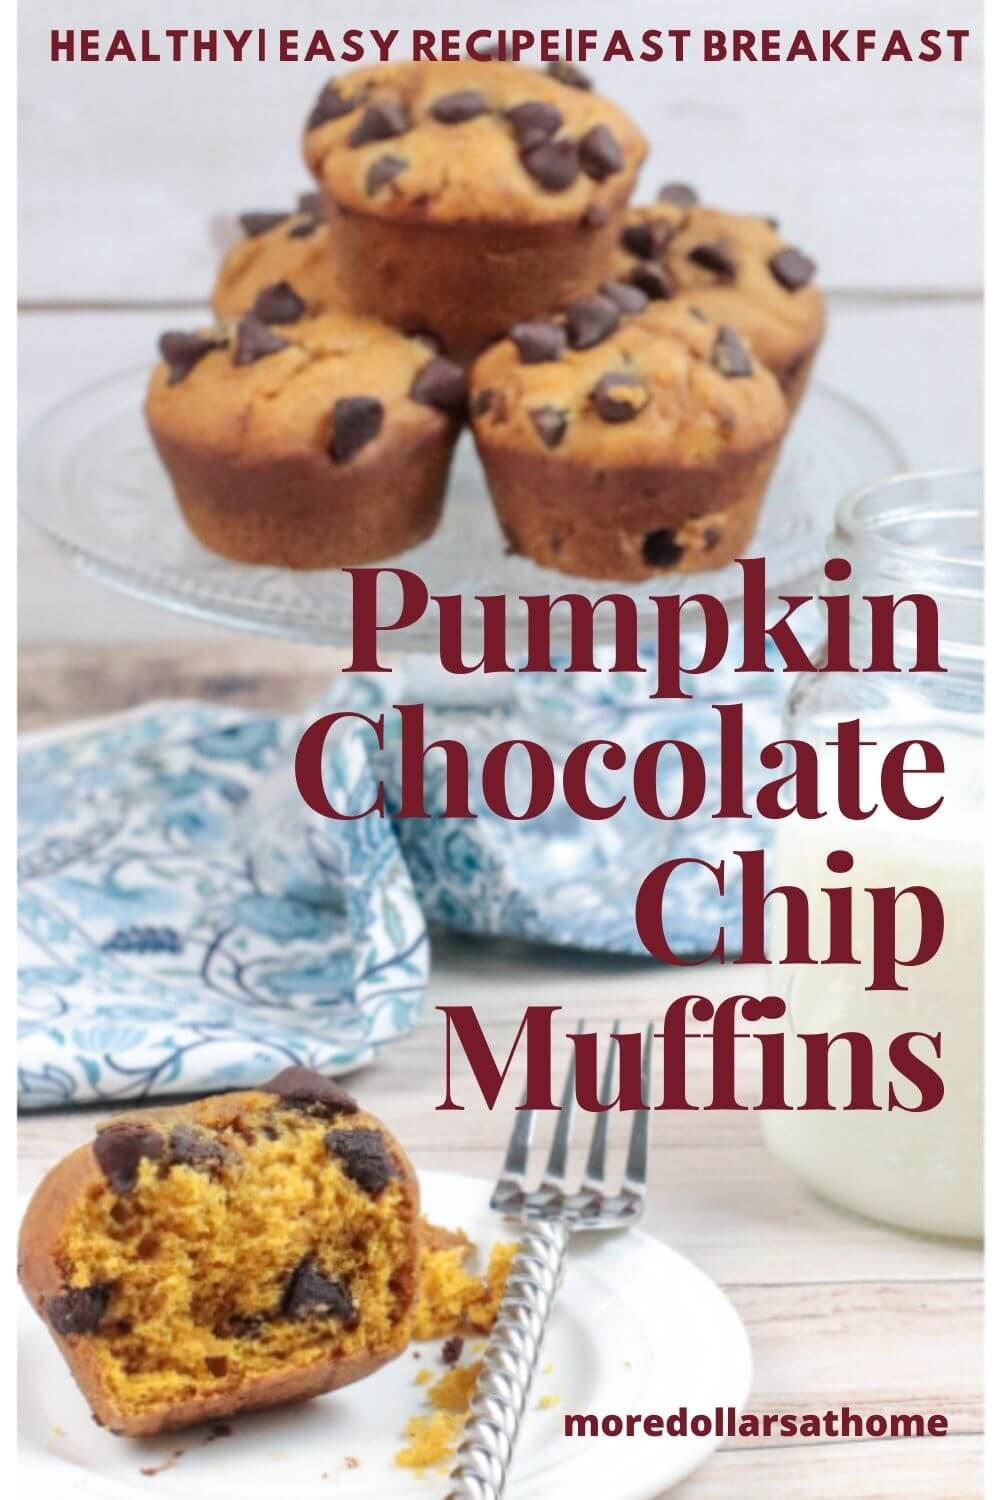 Pumpkin Chocolate Muffins sit on a serving plate.